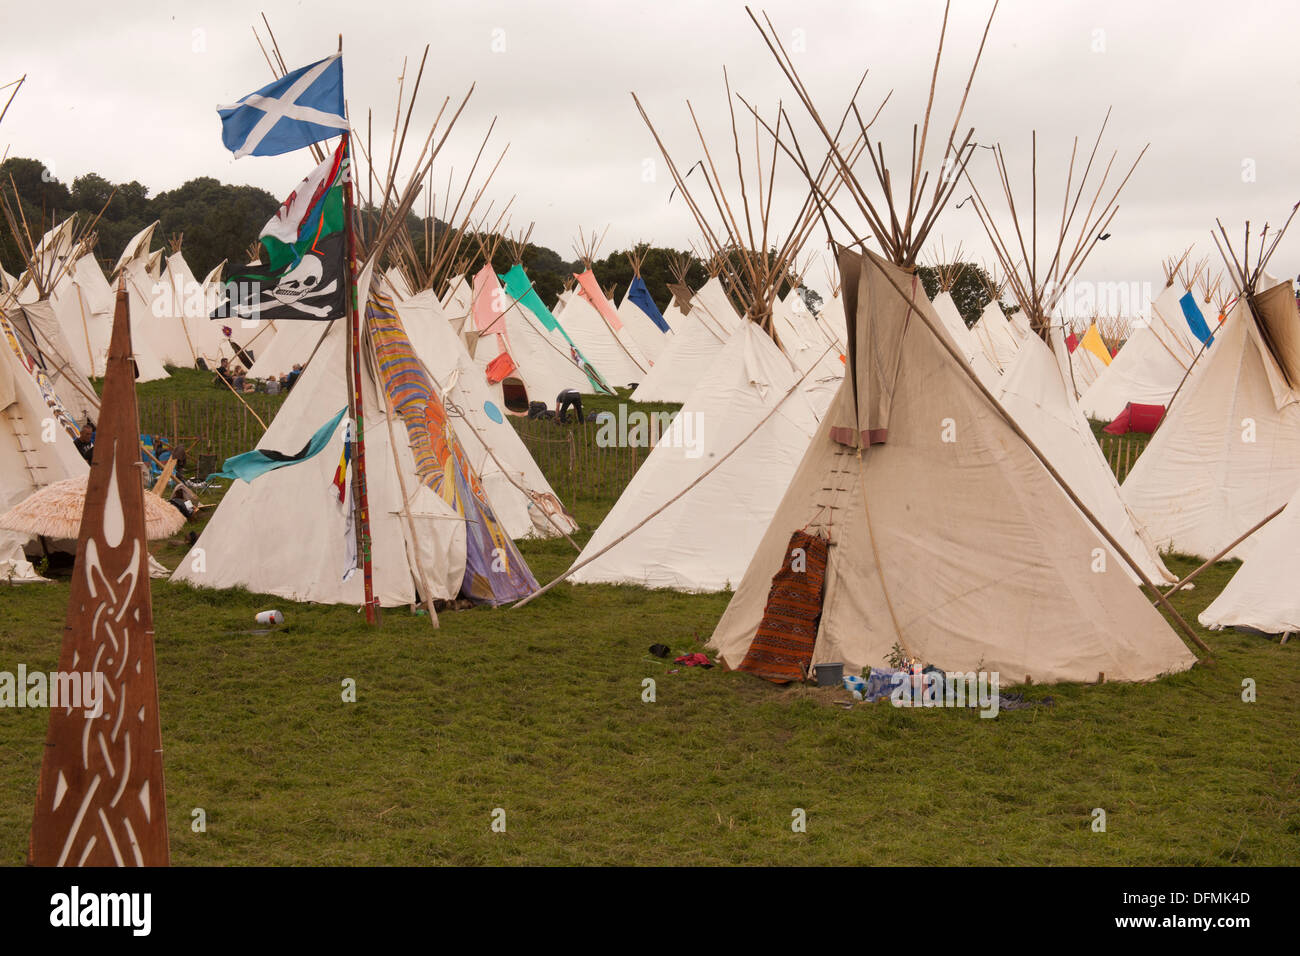 Tipi or Teepee field at the Glastonbury Festival 2013 Somerset England United Kingdom & Tipi or Teepee field at the Glastonbury Festival 2013 Somerset ...